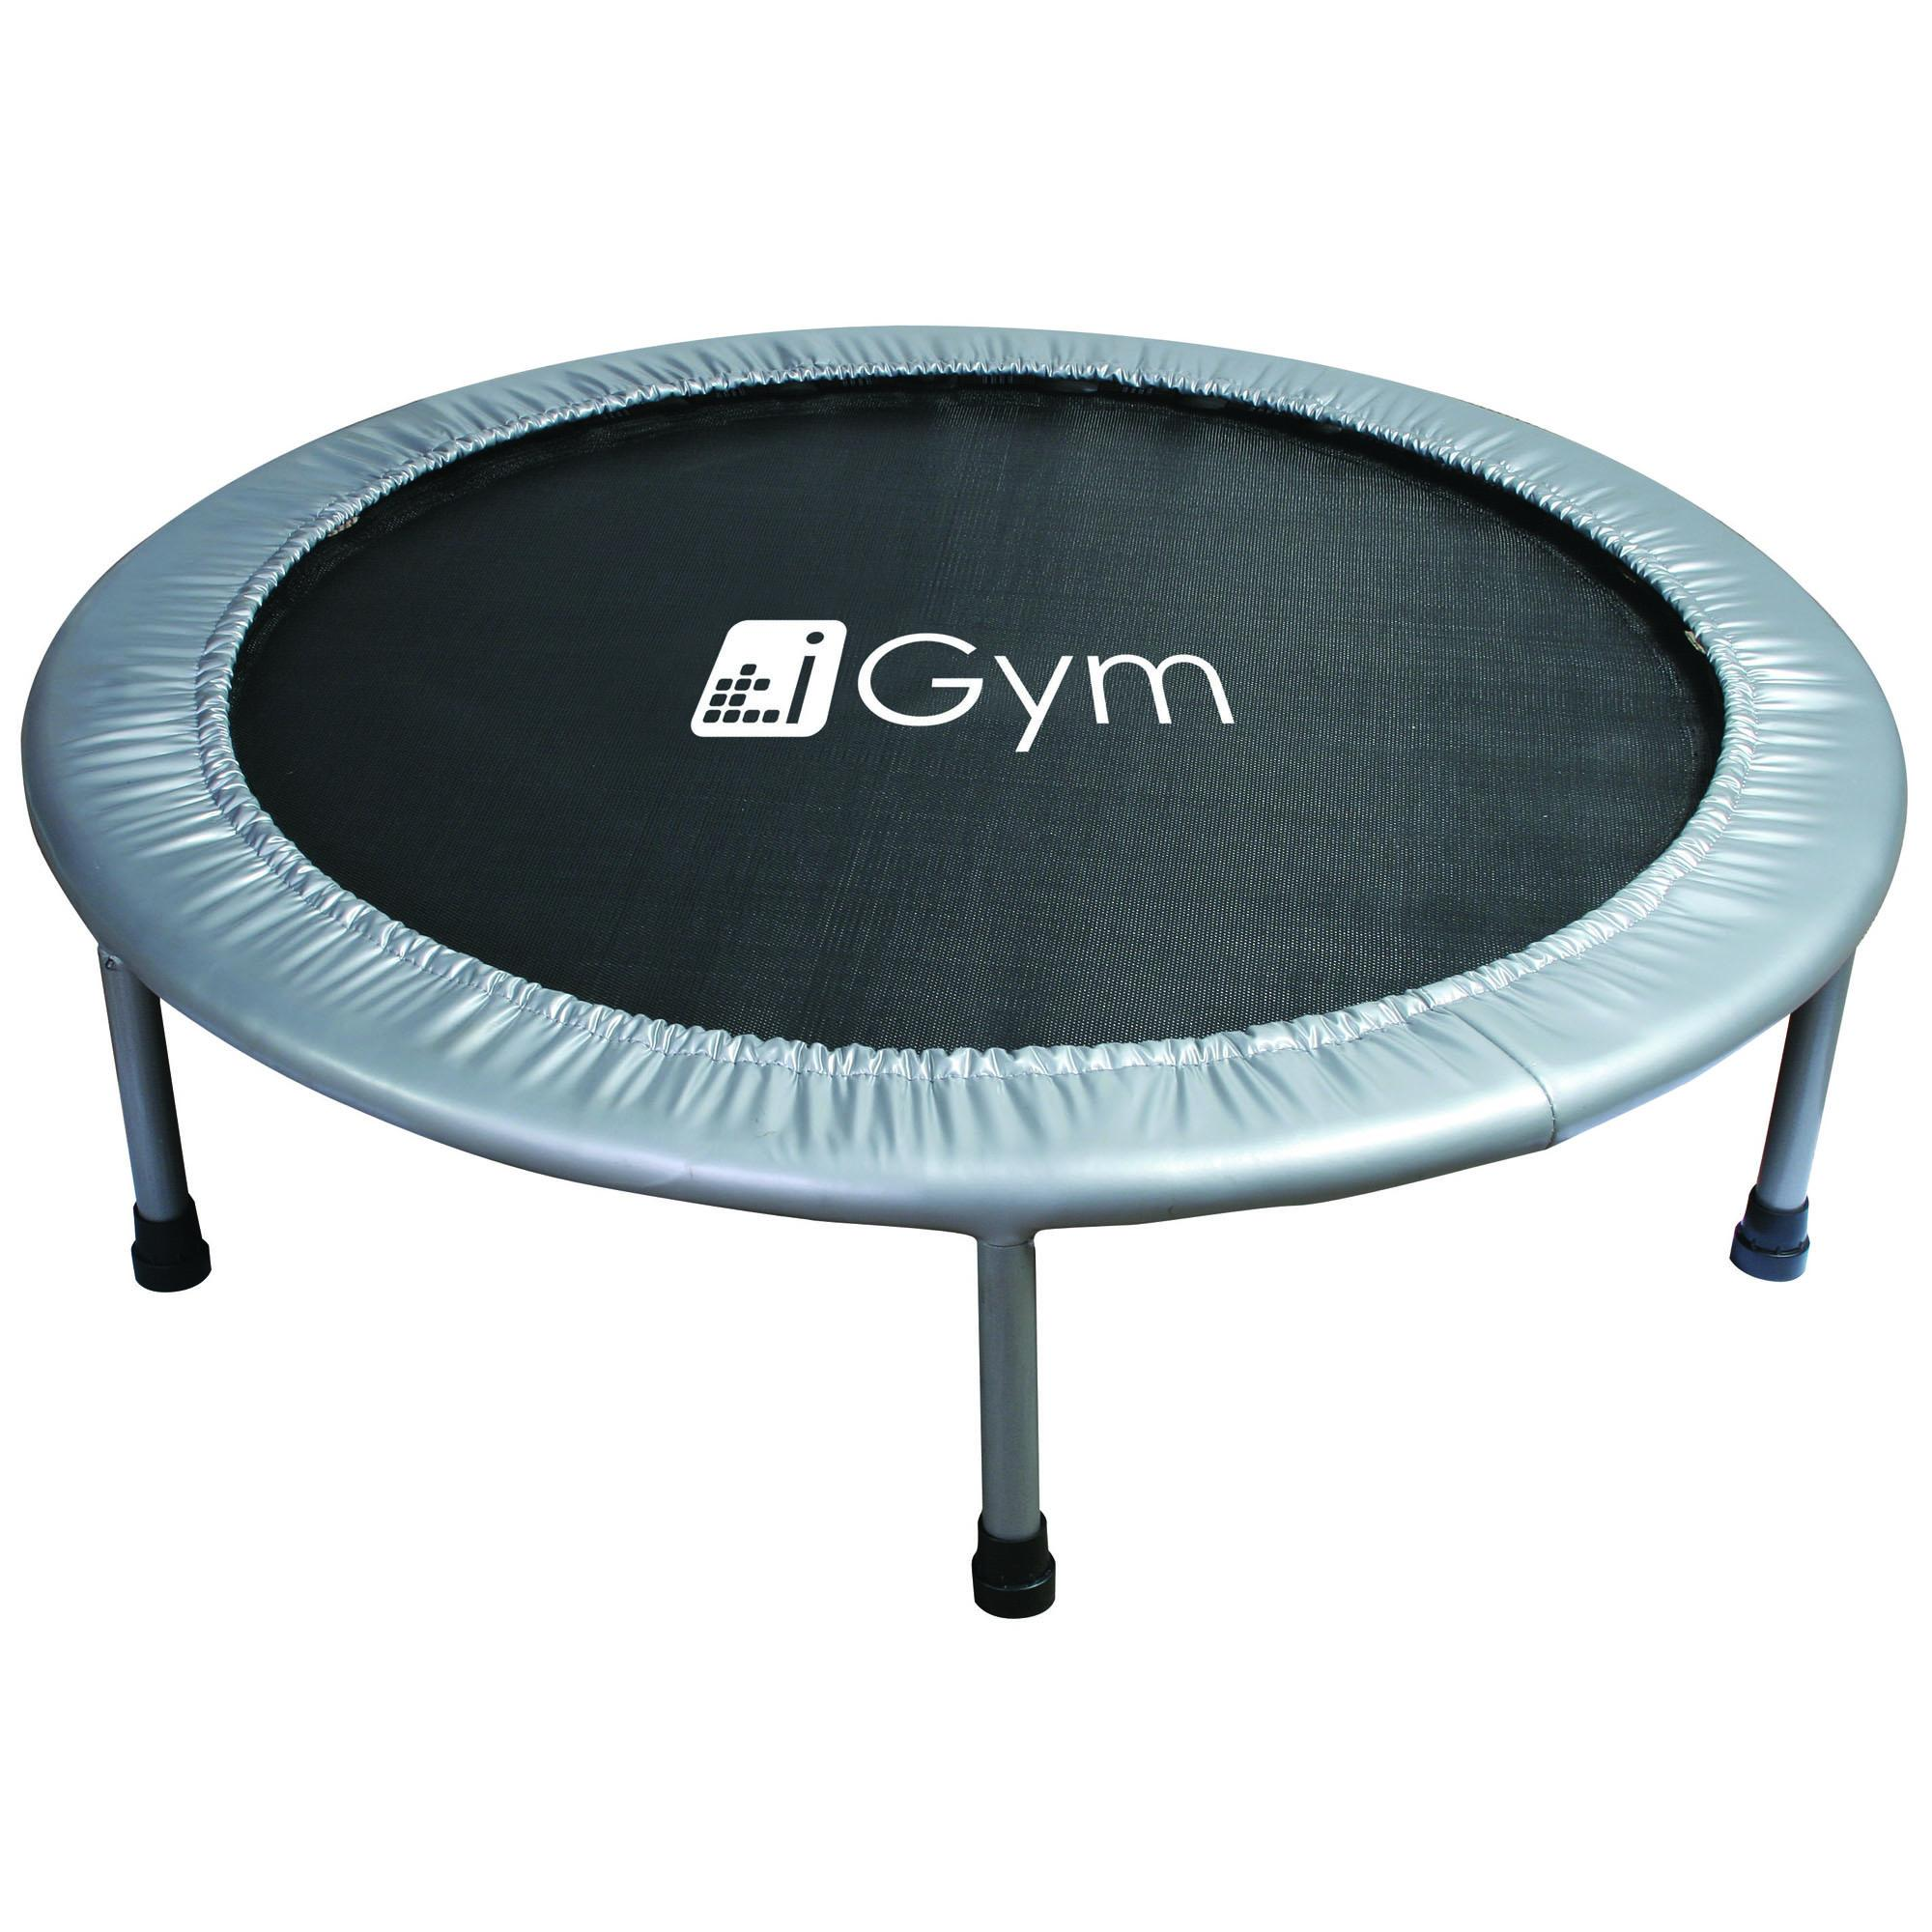 IGym Fitness Trampoline Indoor Exercise Mini Cardio